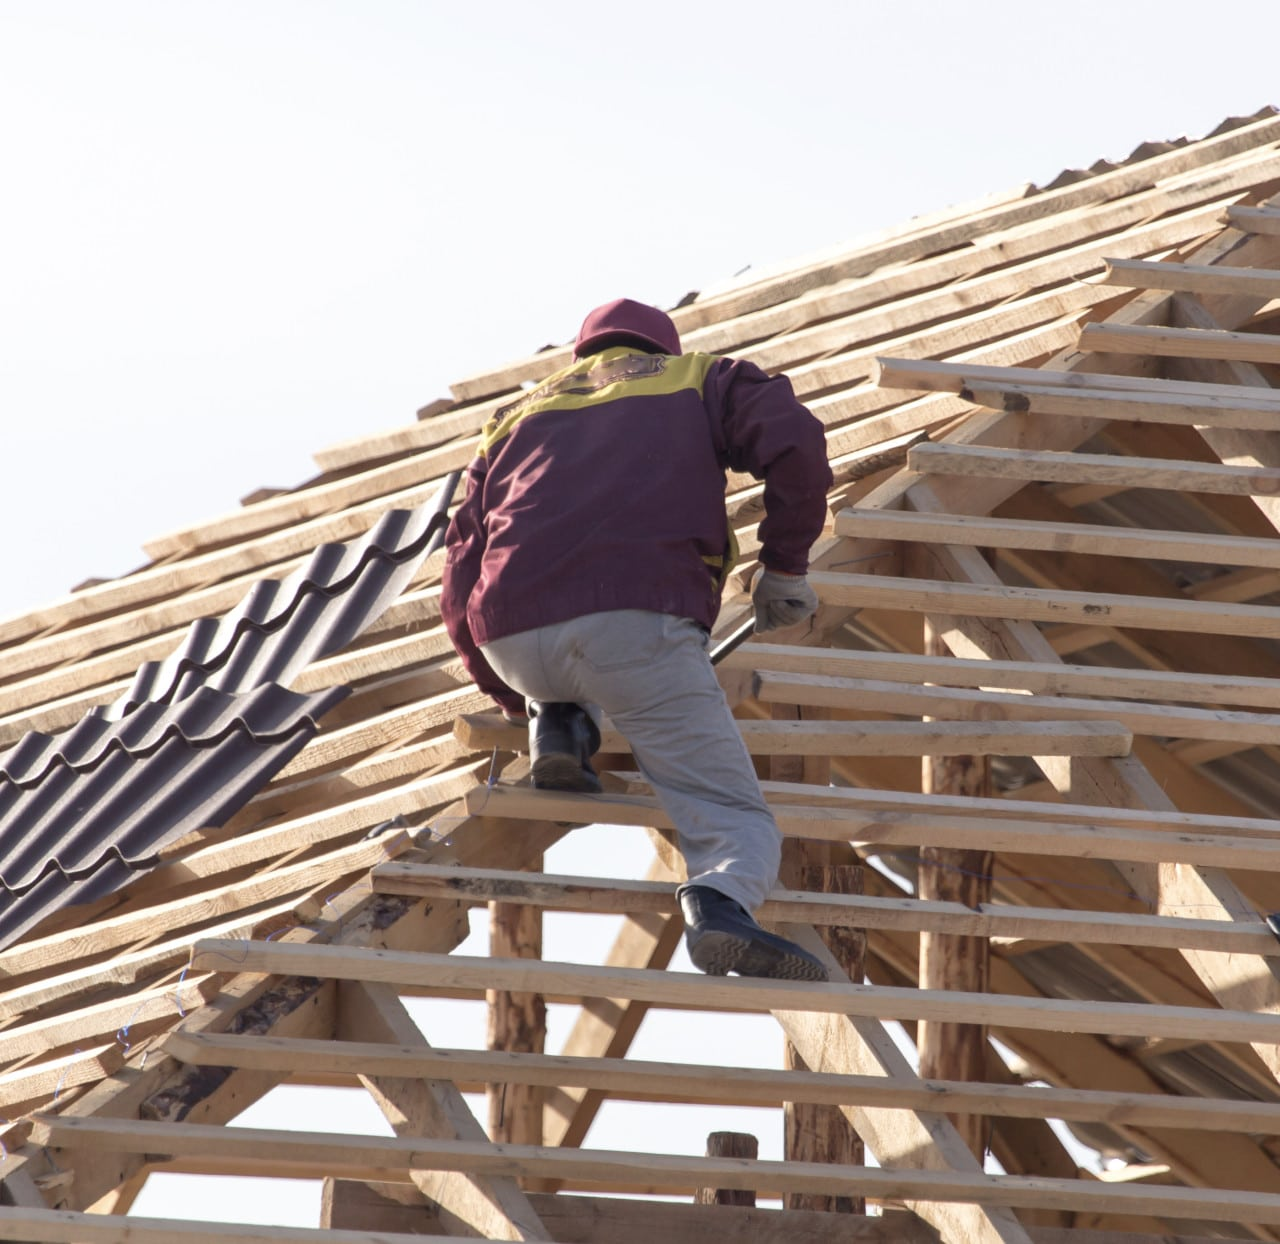 Middletown Ohio Roofer with hammer